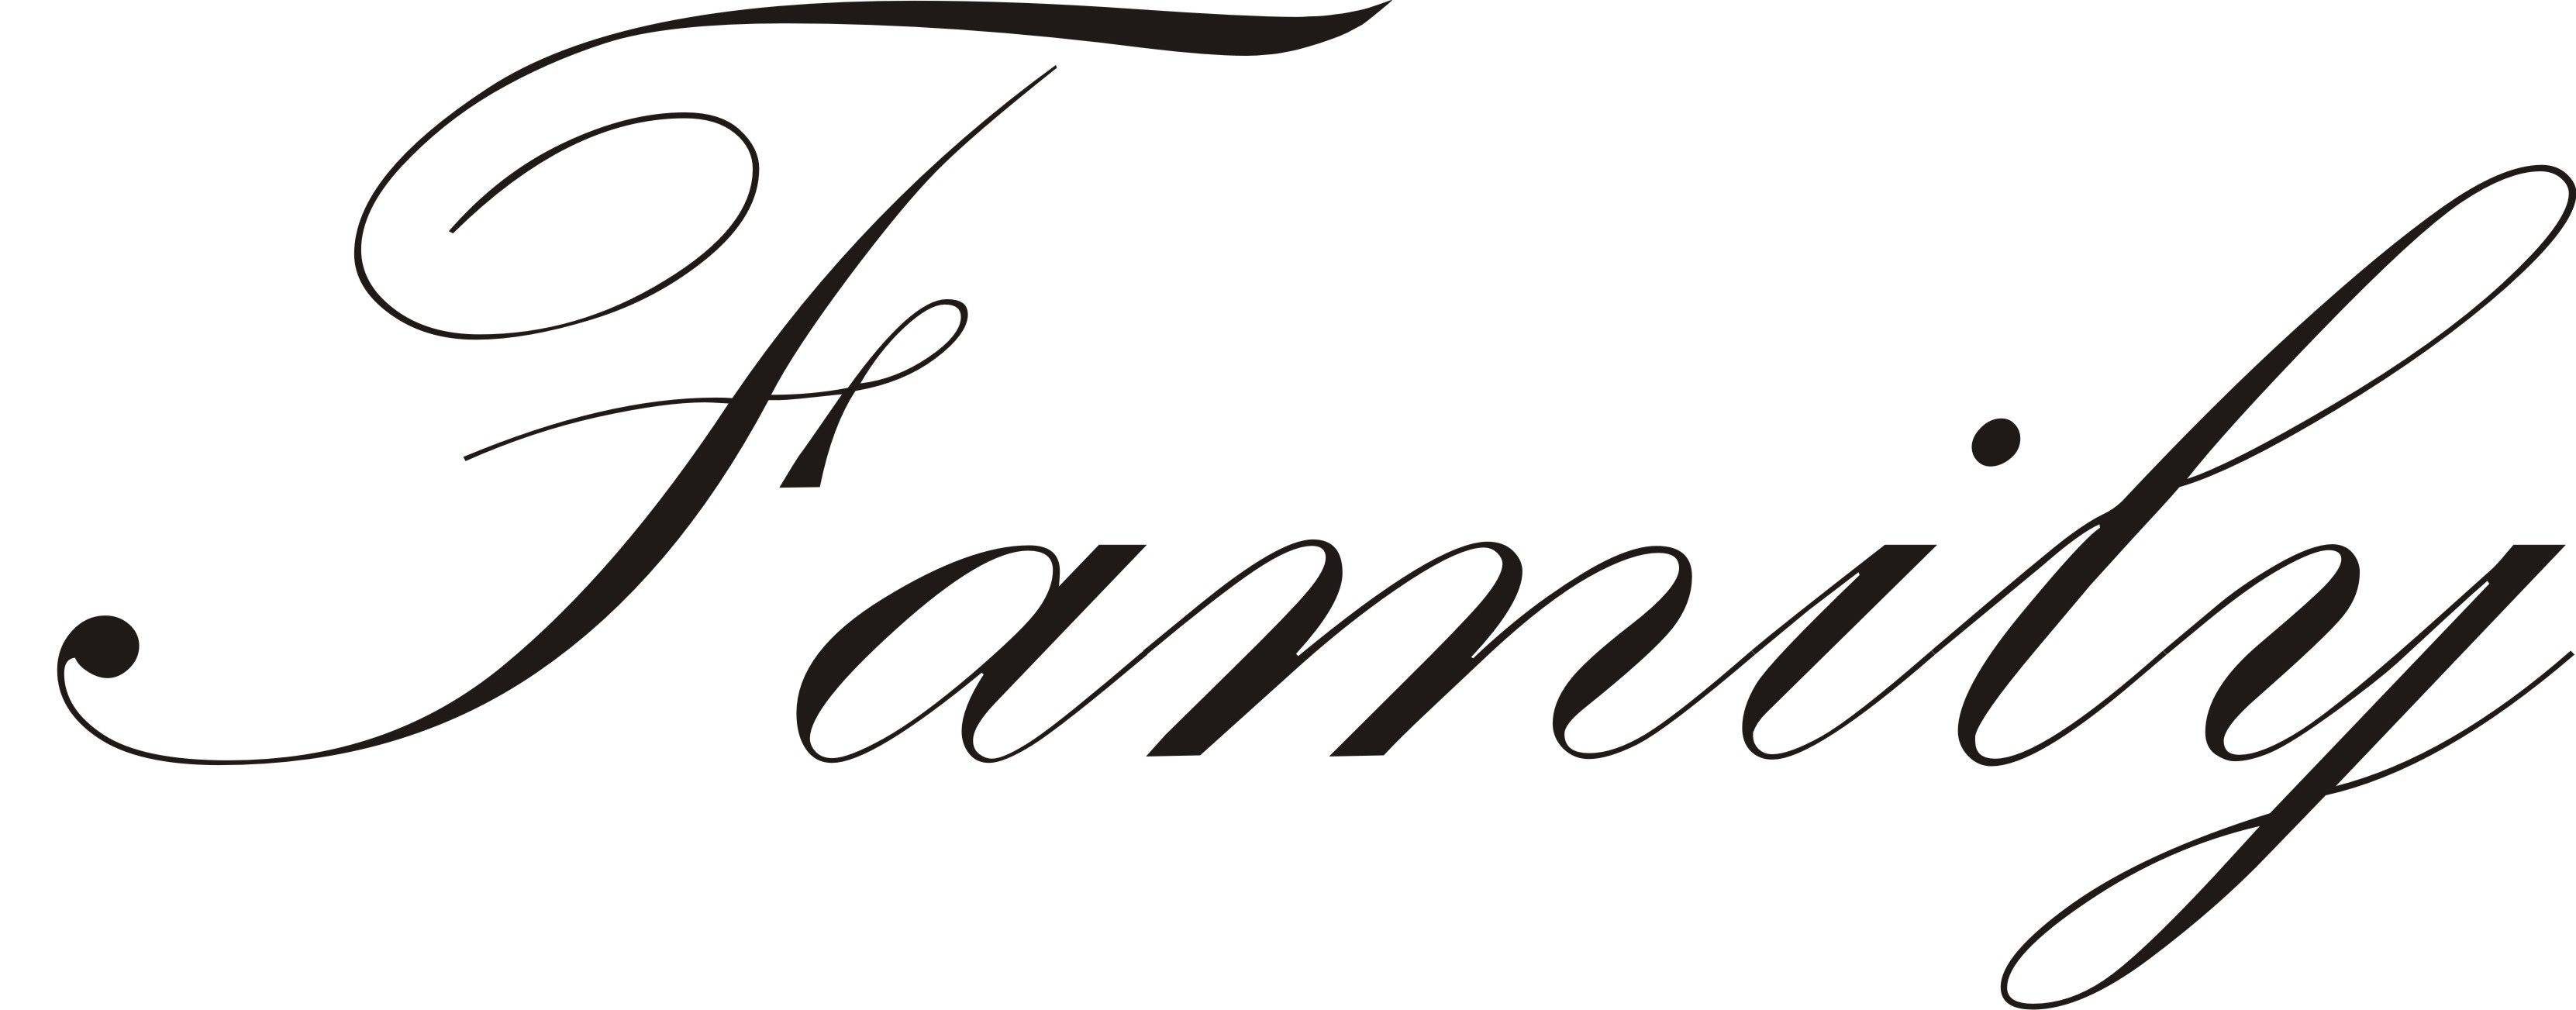 The Word Family In Cursive